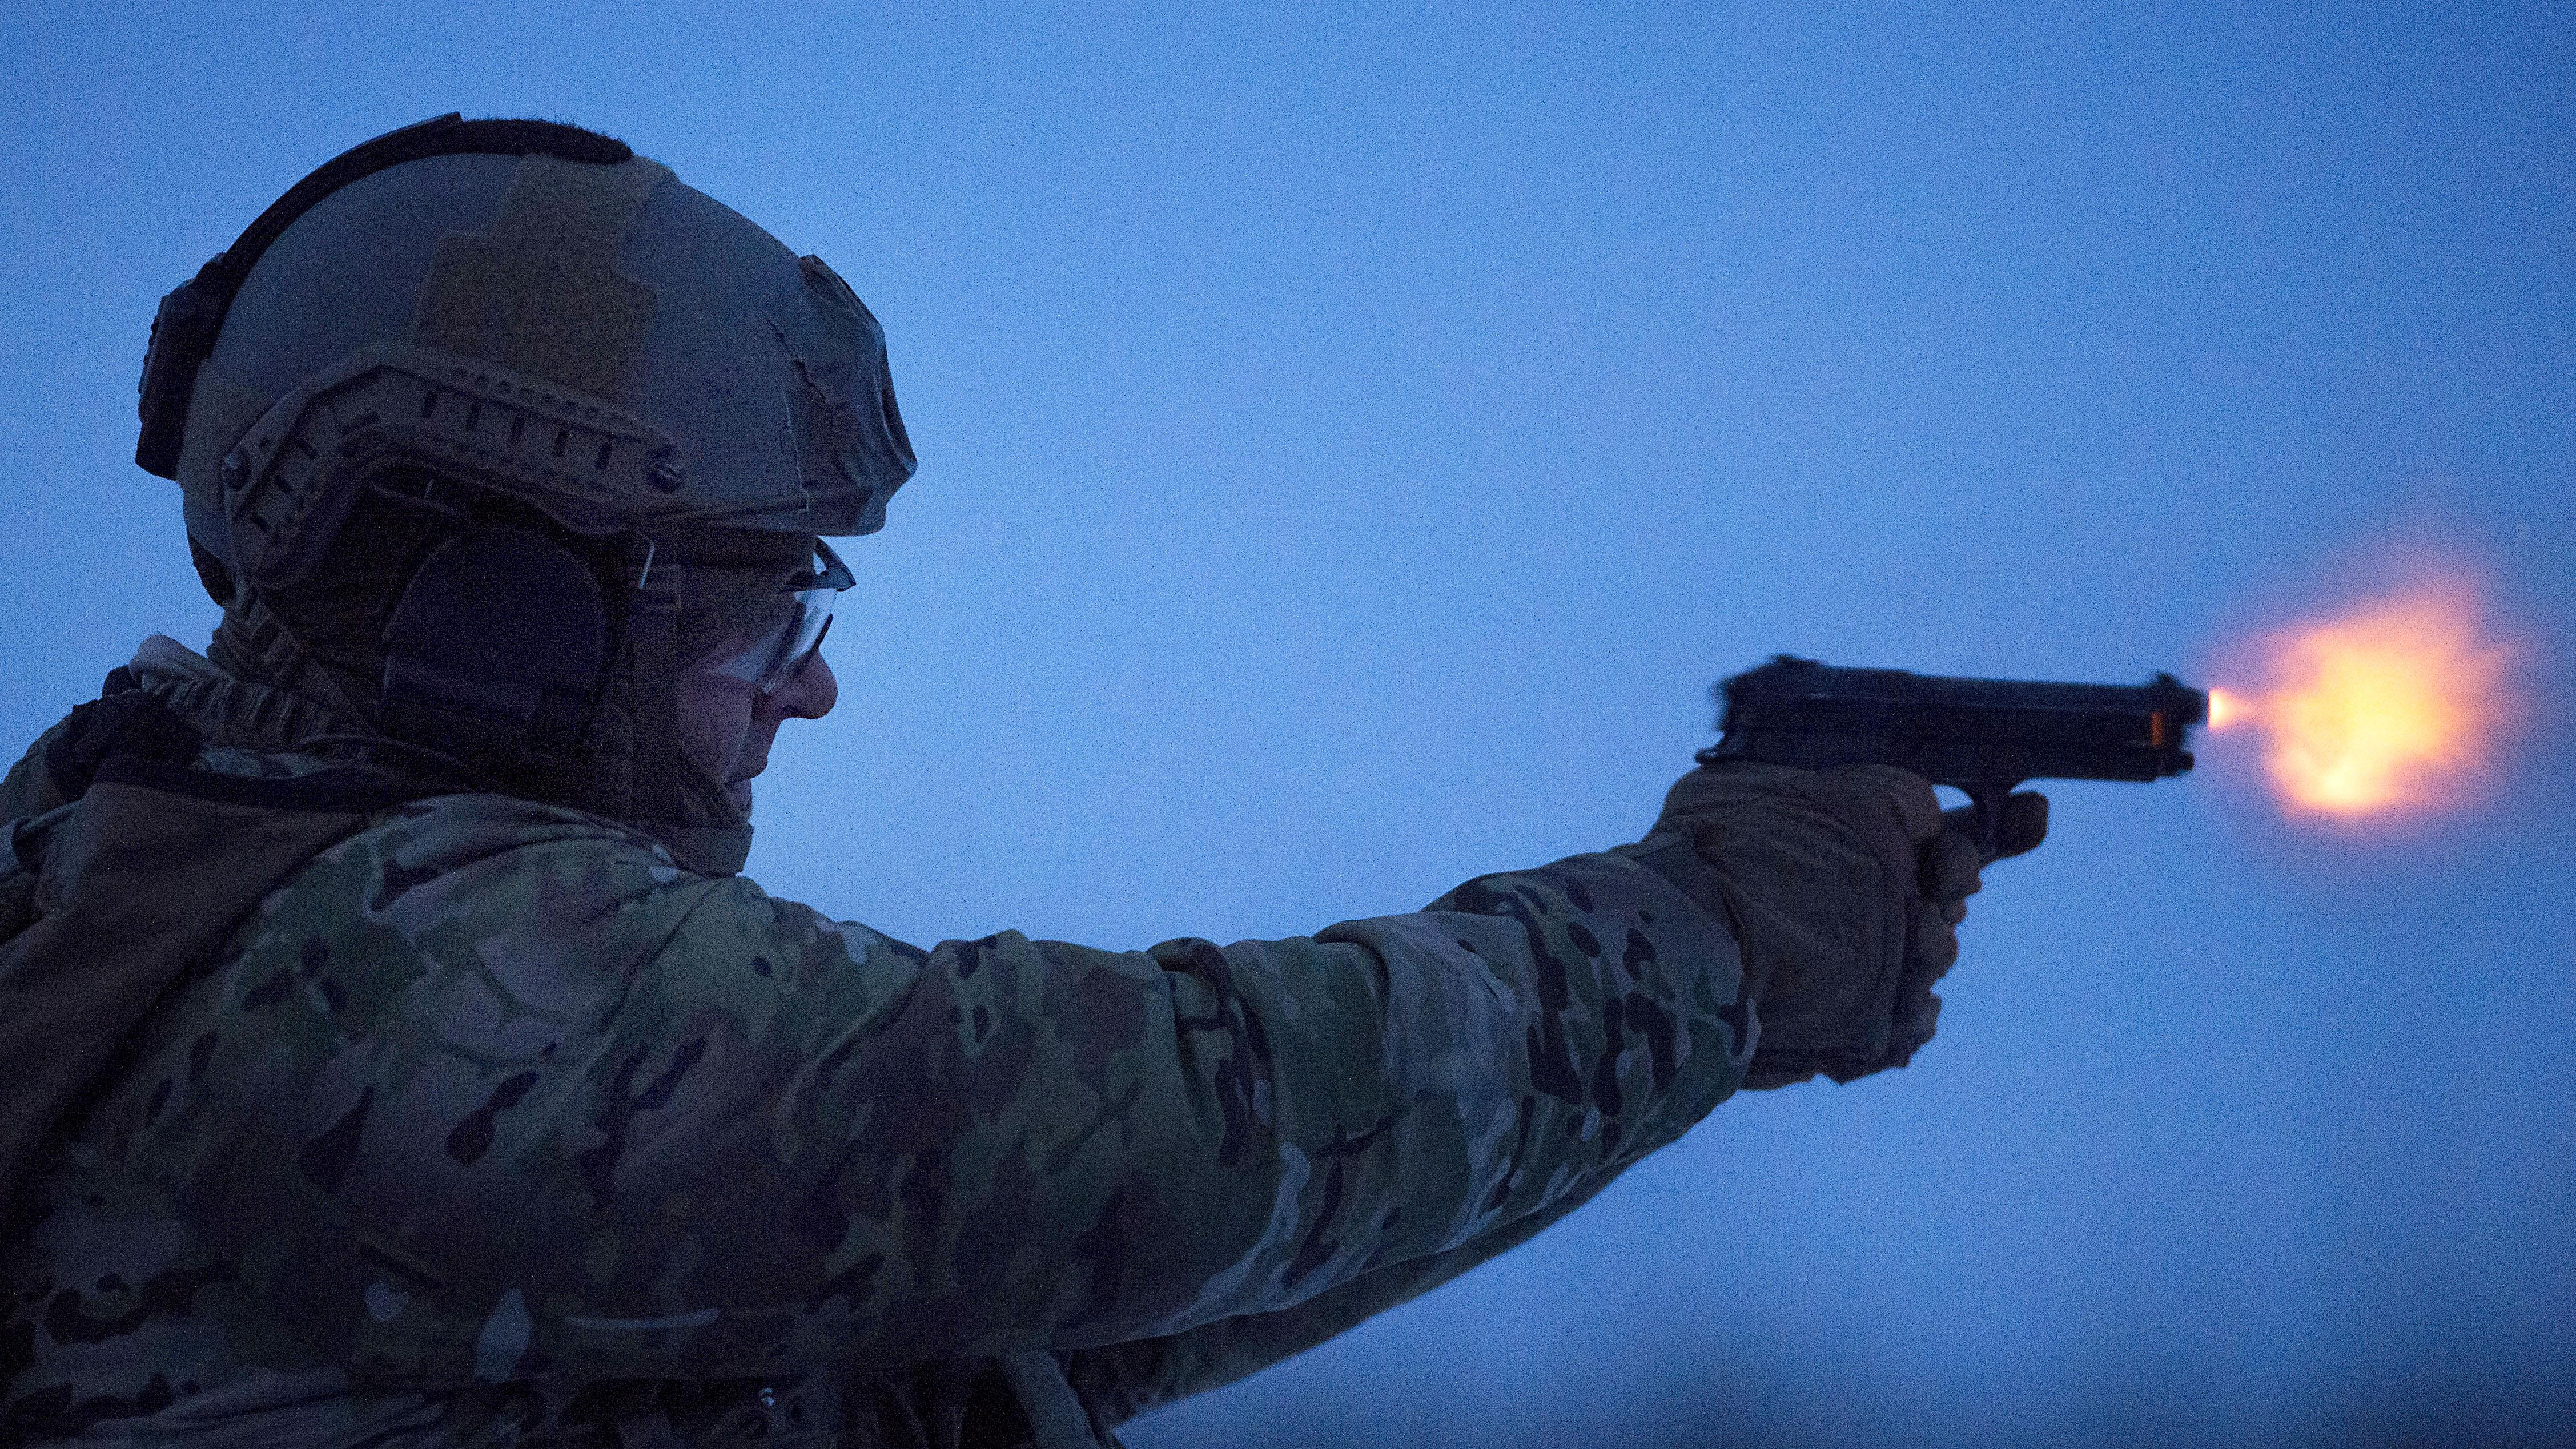 An airman fires an M9 pistol during small-arms live-fire sustainment training at Joint Base Elmendorf-Richardson, Alaska, Nov. 29, 2017. The airman is assigned to the 3rd Air Support Operations Squadron. Air Force photo by Alejandro Peña